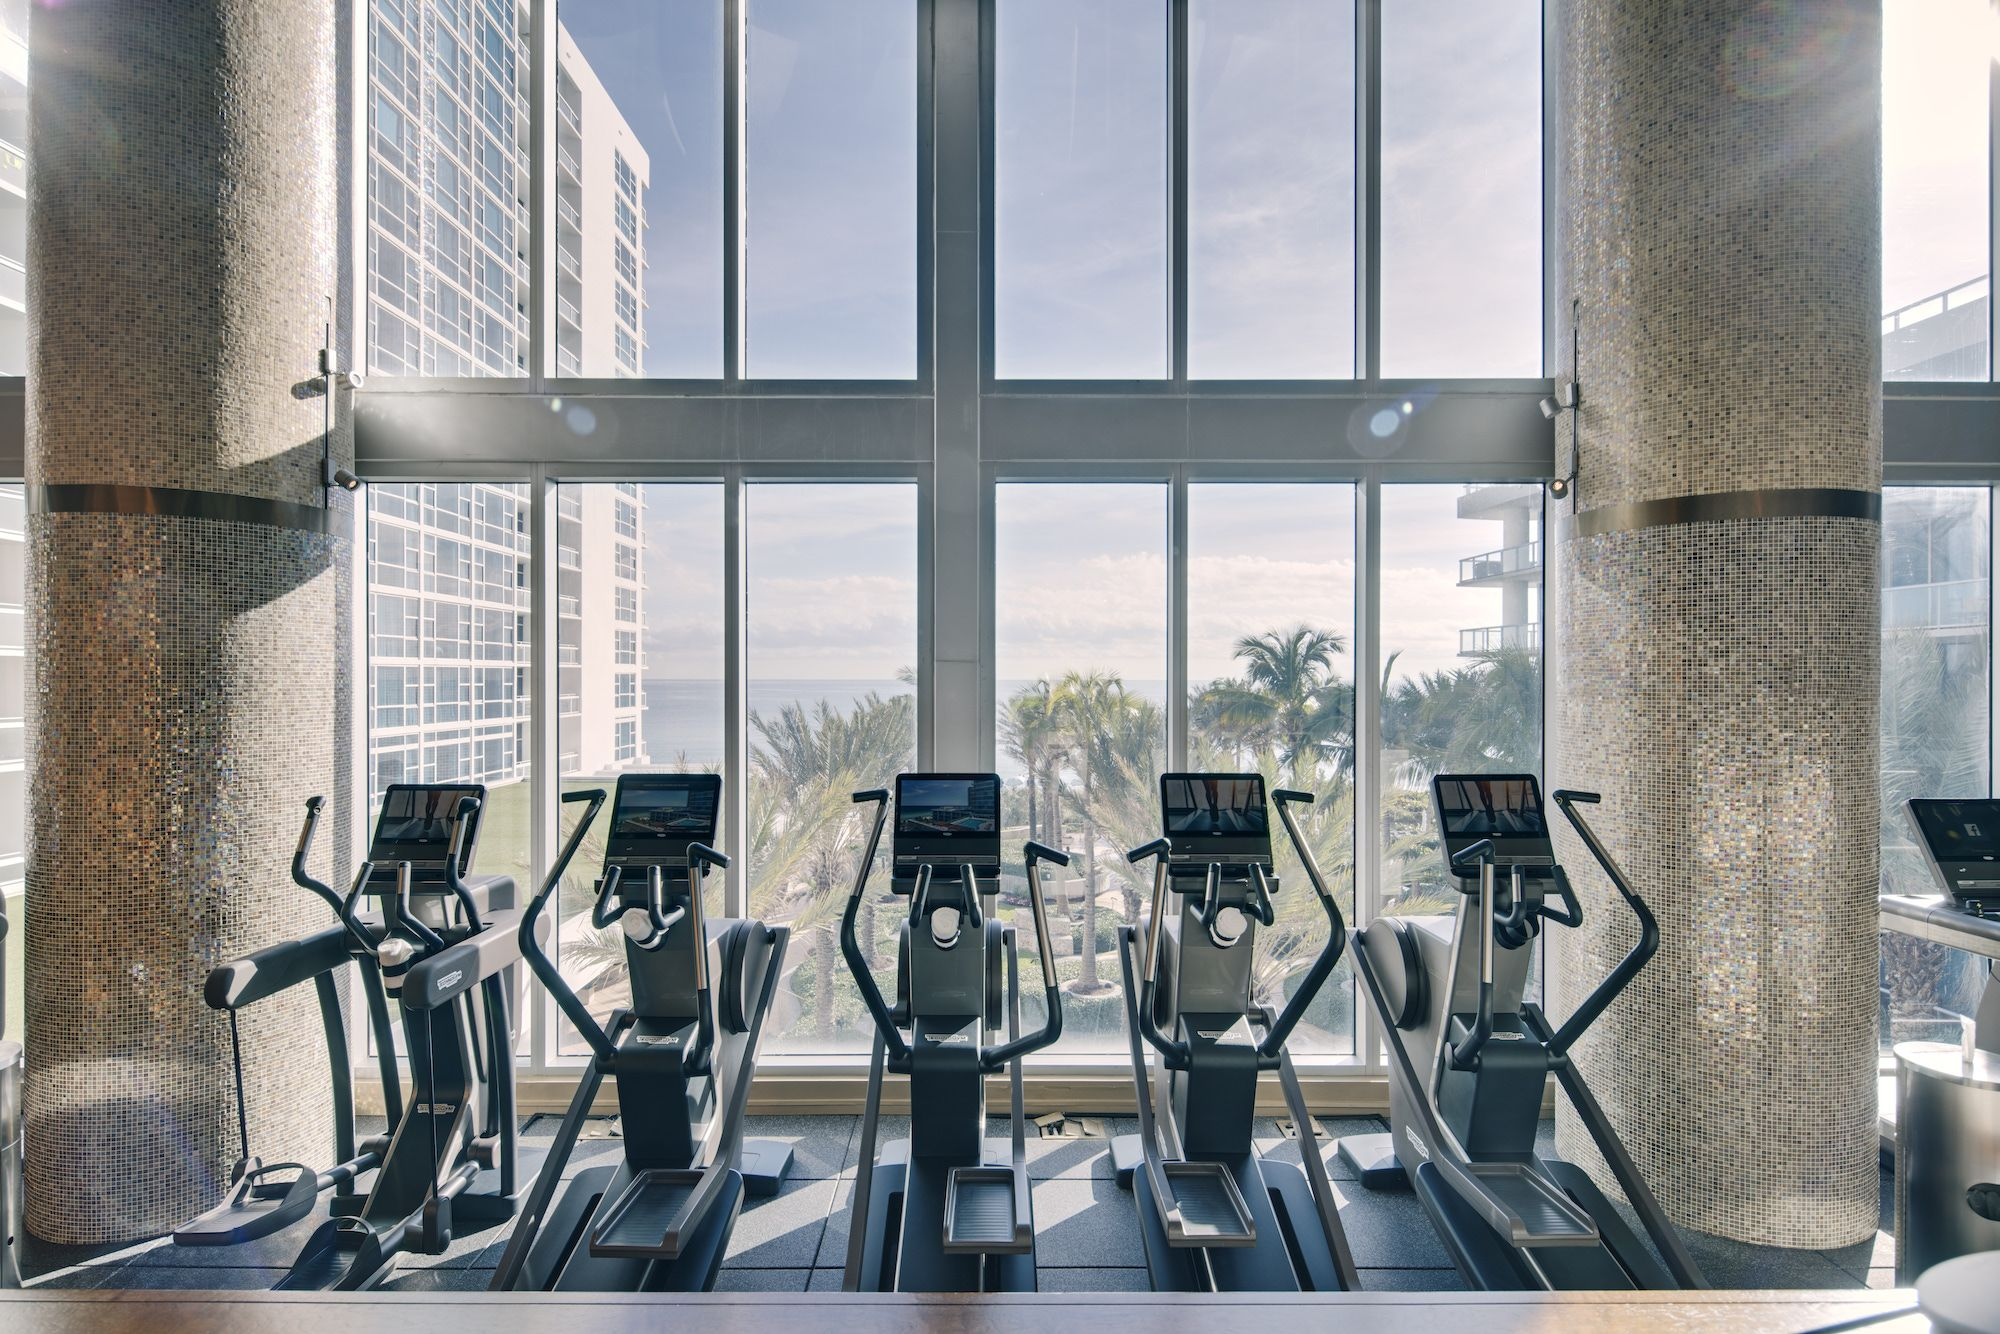 Best hotel gyms fitness friendly hotels with gyms